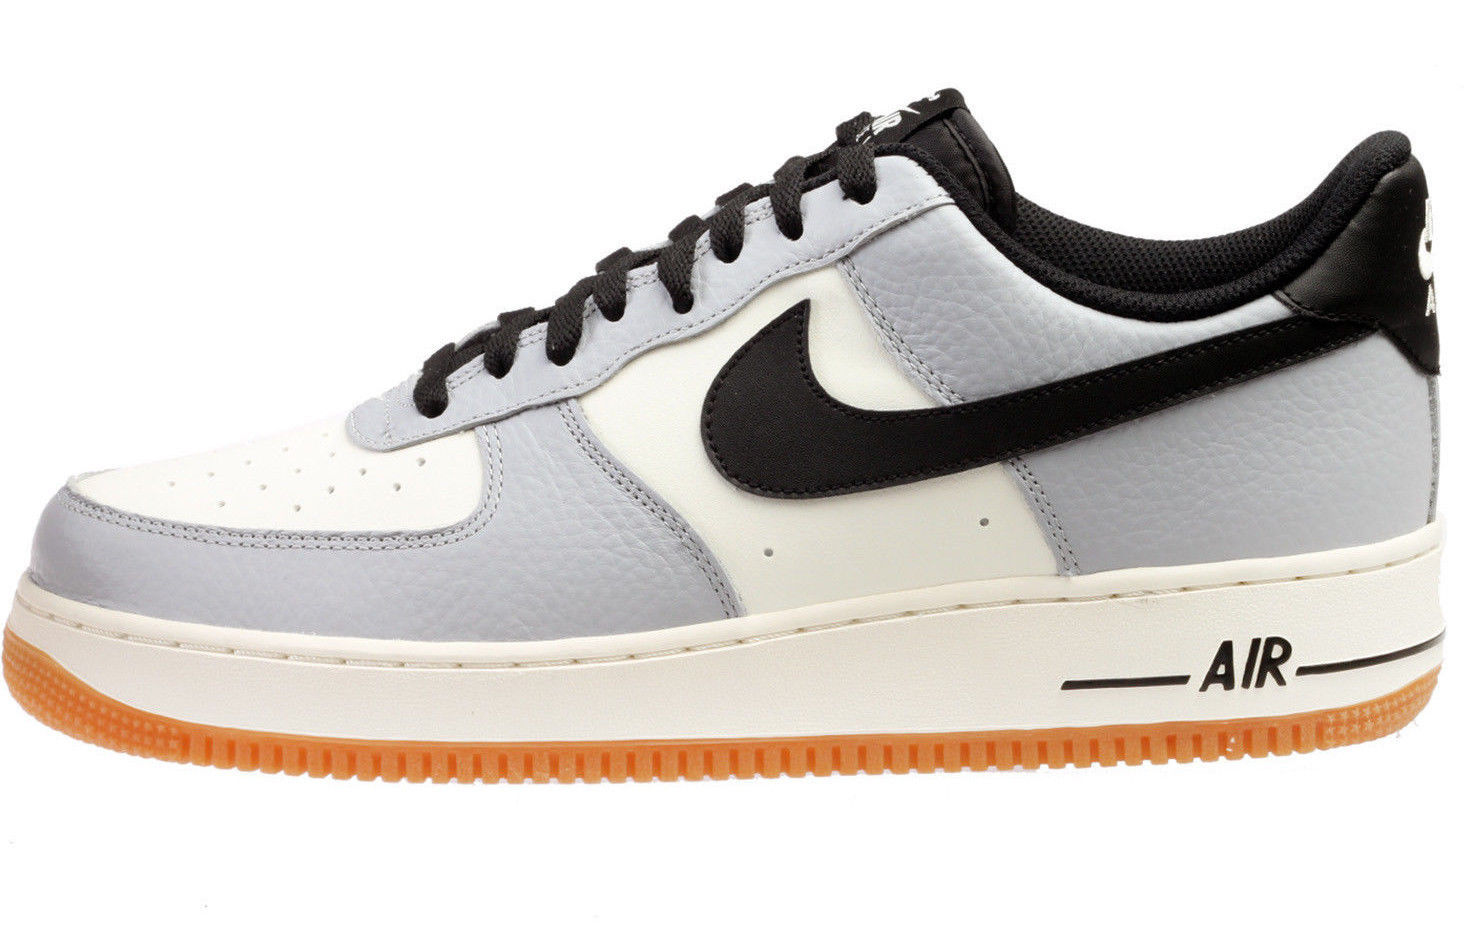 online retailer 4f3b1 87b03 NIKE AIR FORCE 1 GREY BLACK GUM SIZE 9 BRAND NEW FAST SHIPPING (865031-601)